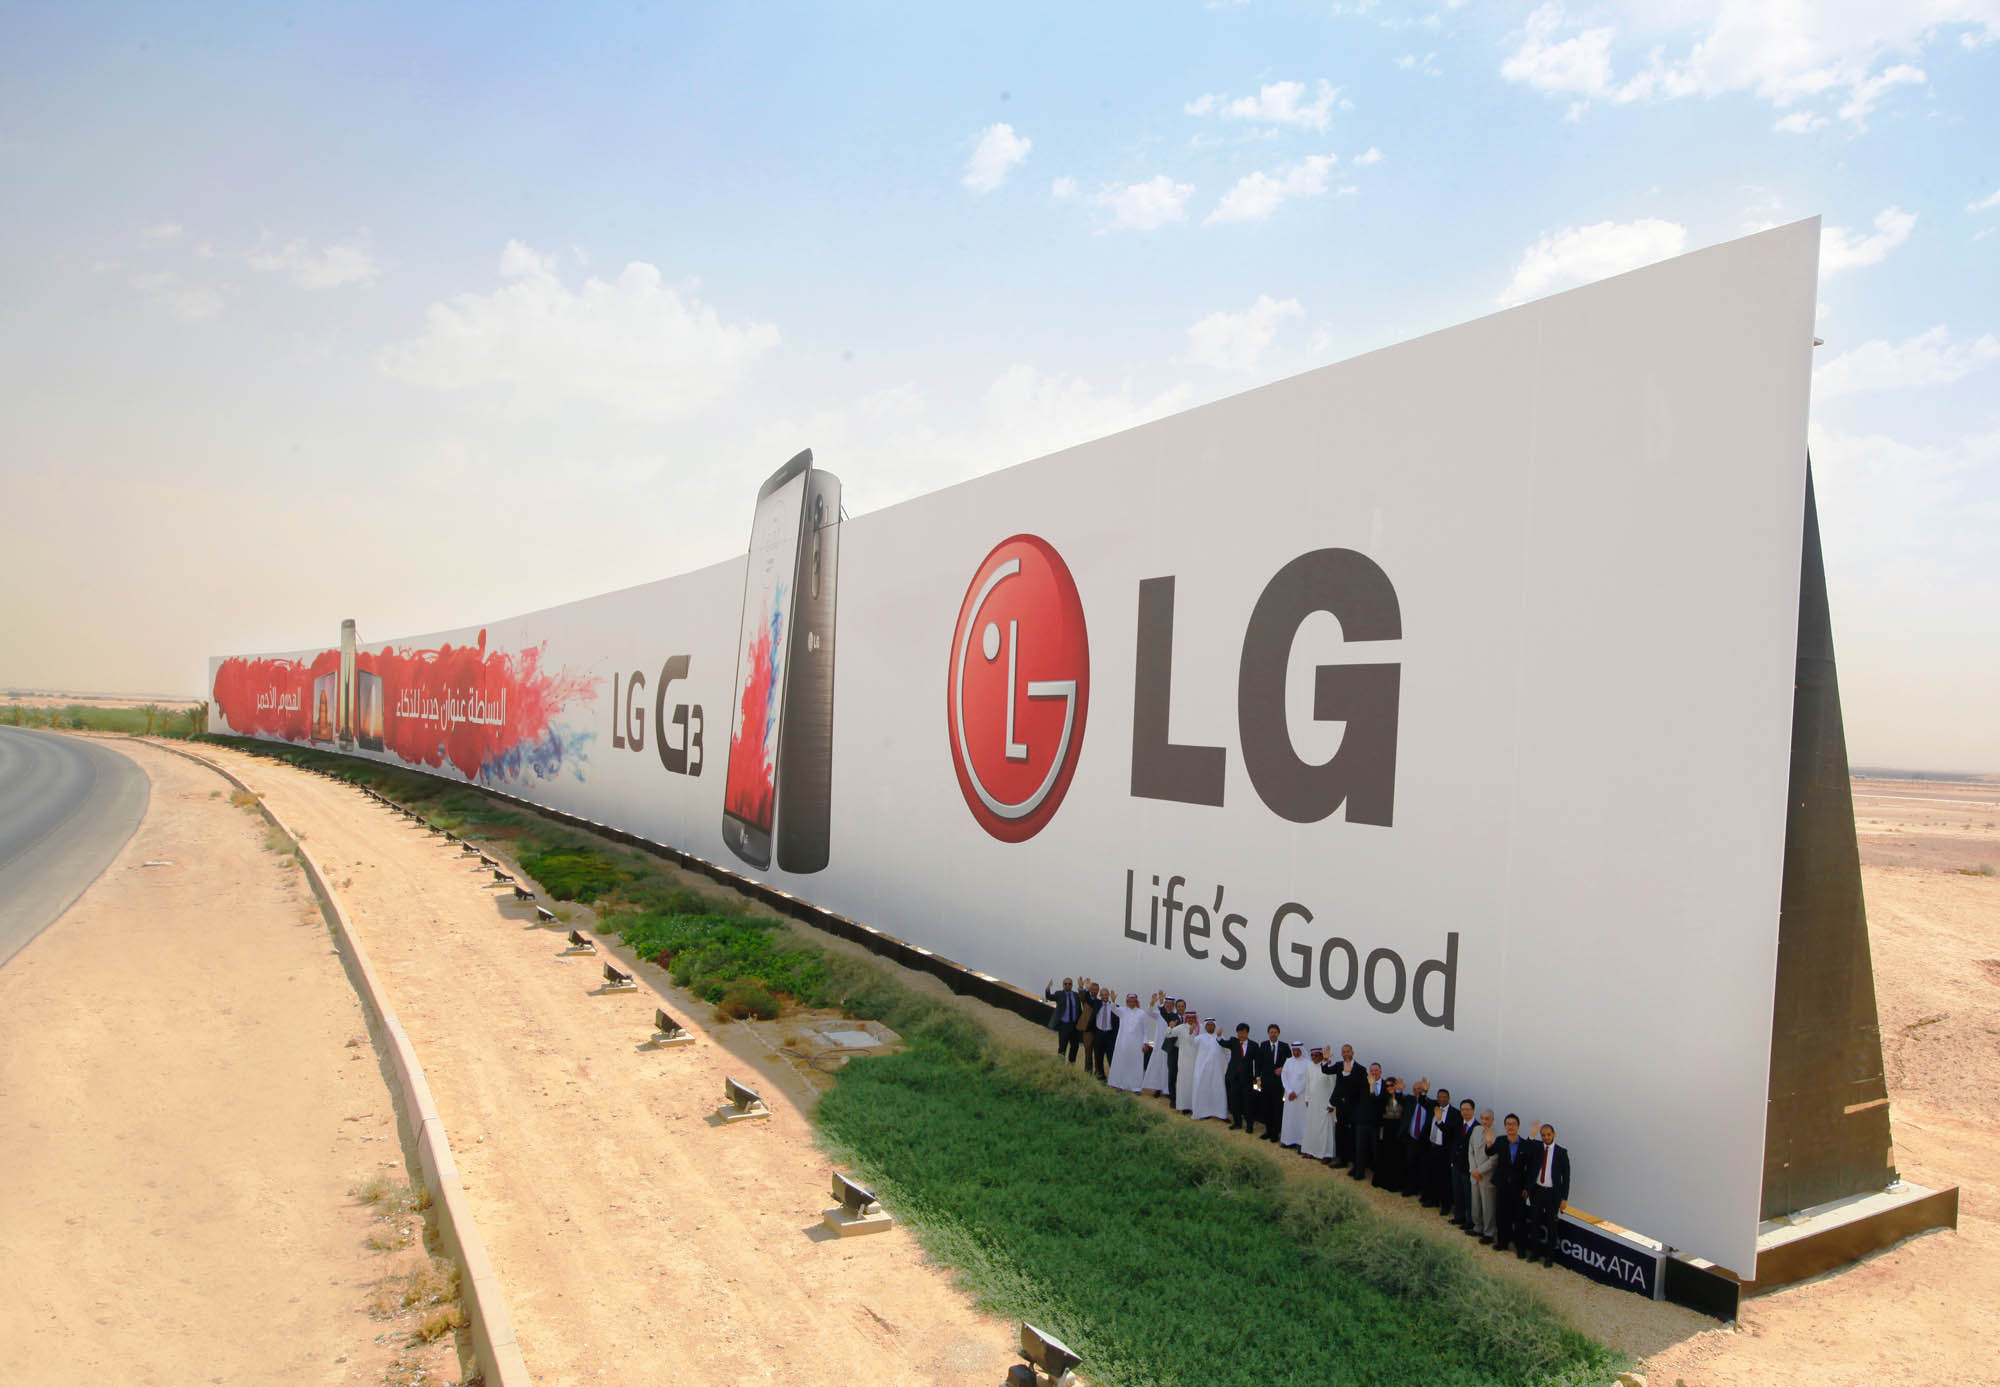 1411107138_lg-sets-guinness-world-record-with-this-gigantic-g3-ad.jpg